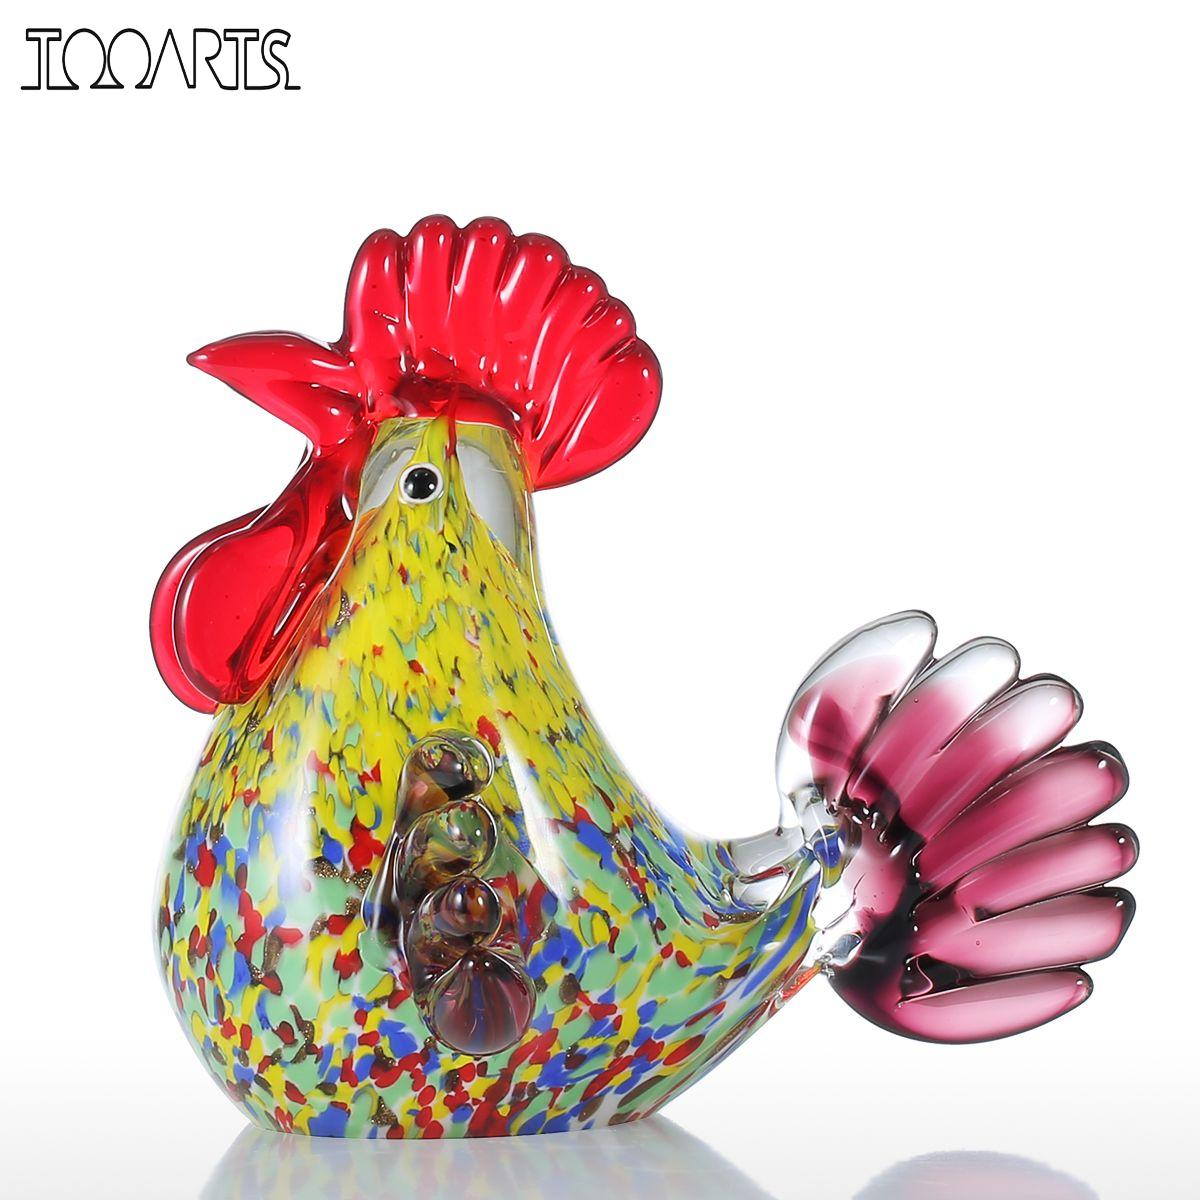 Tooarts Metal Figurine Iron Rooster Home Decor Articles: Popular Rooster Decorations-Buy Cheap Rooster Decorations